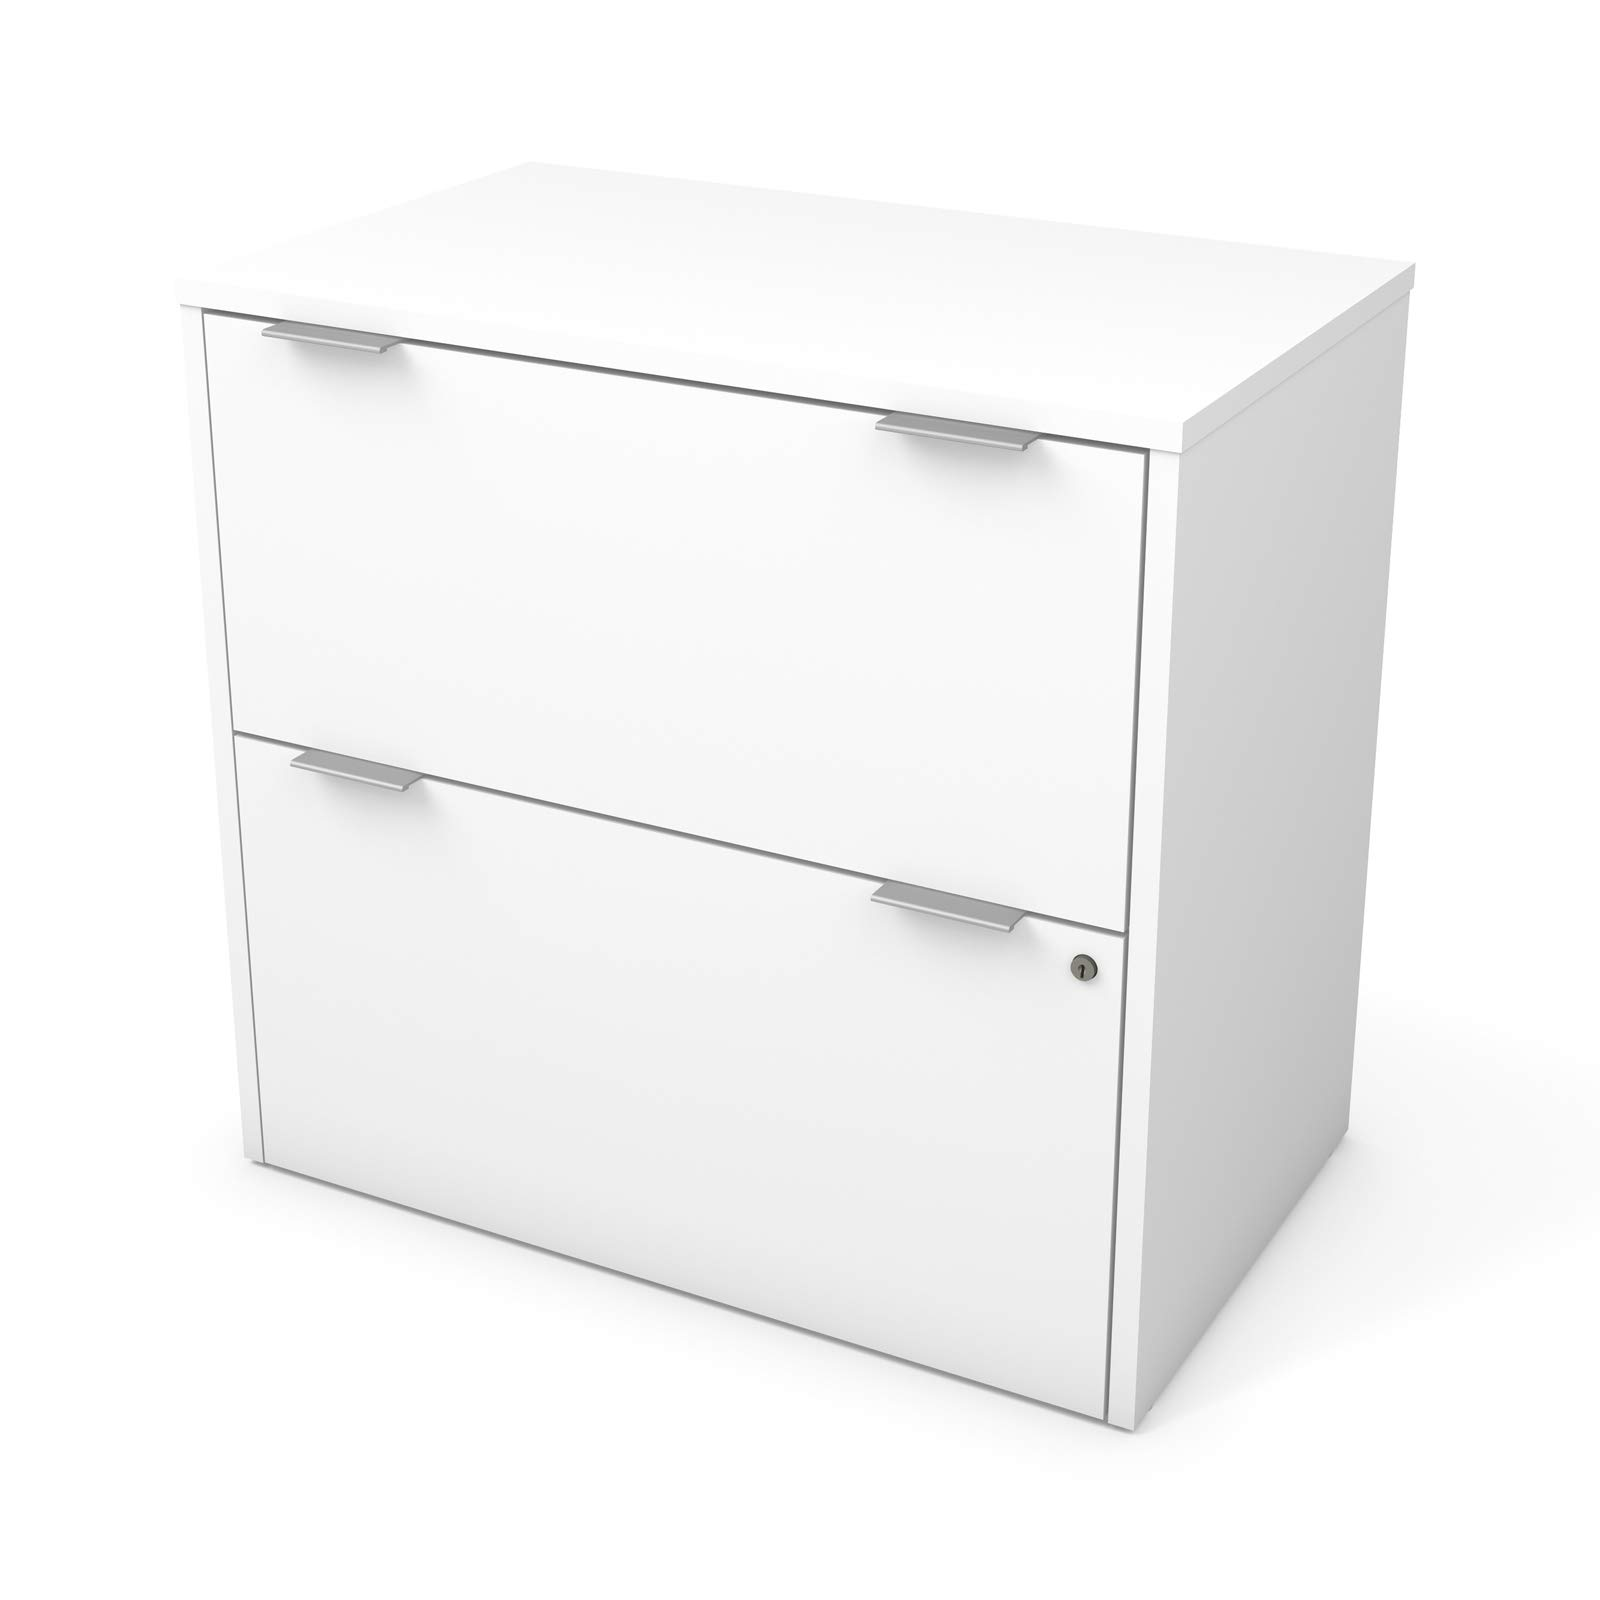 Lateral Filing Cabinet - Modern Style File Cabinet - Home Office Organizer with 2 File Drawers (White)